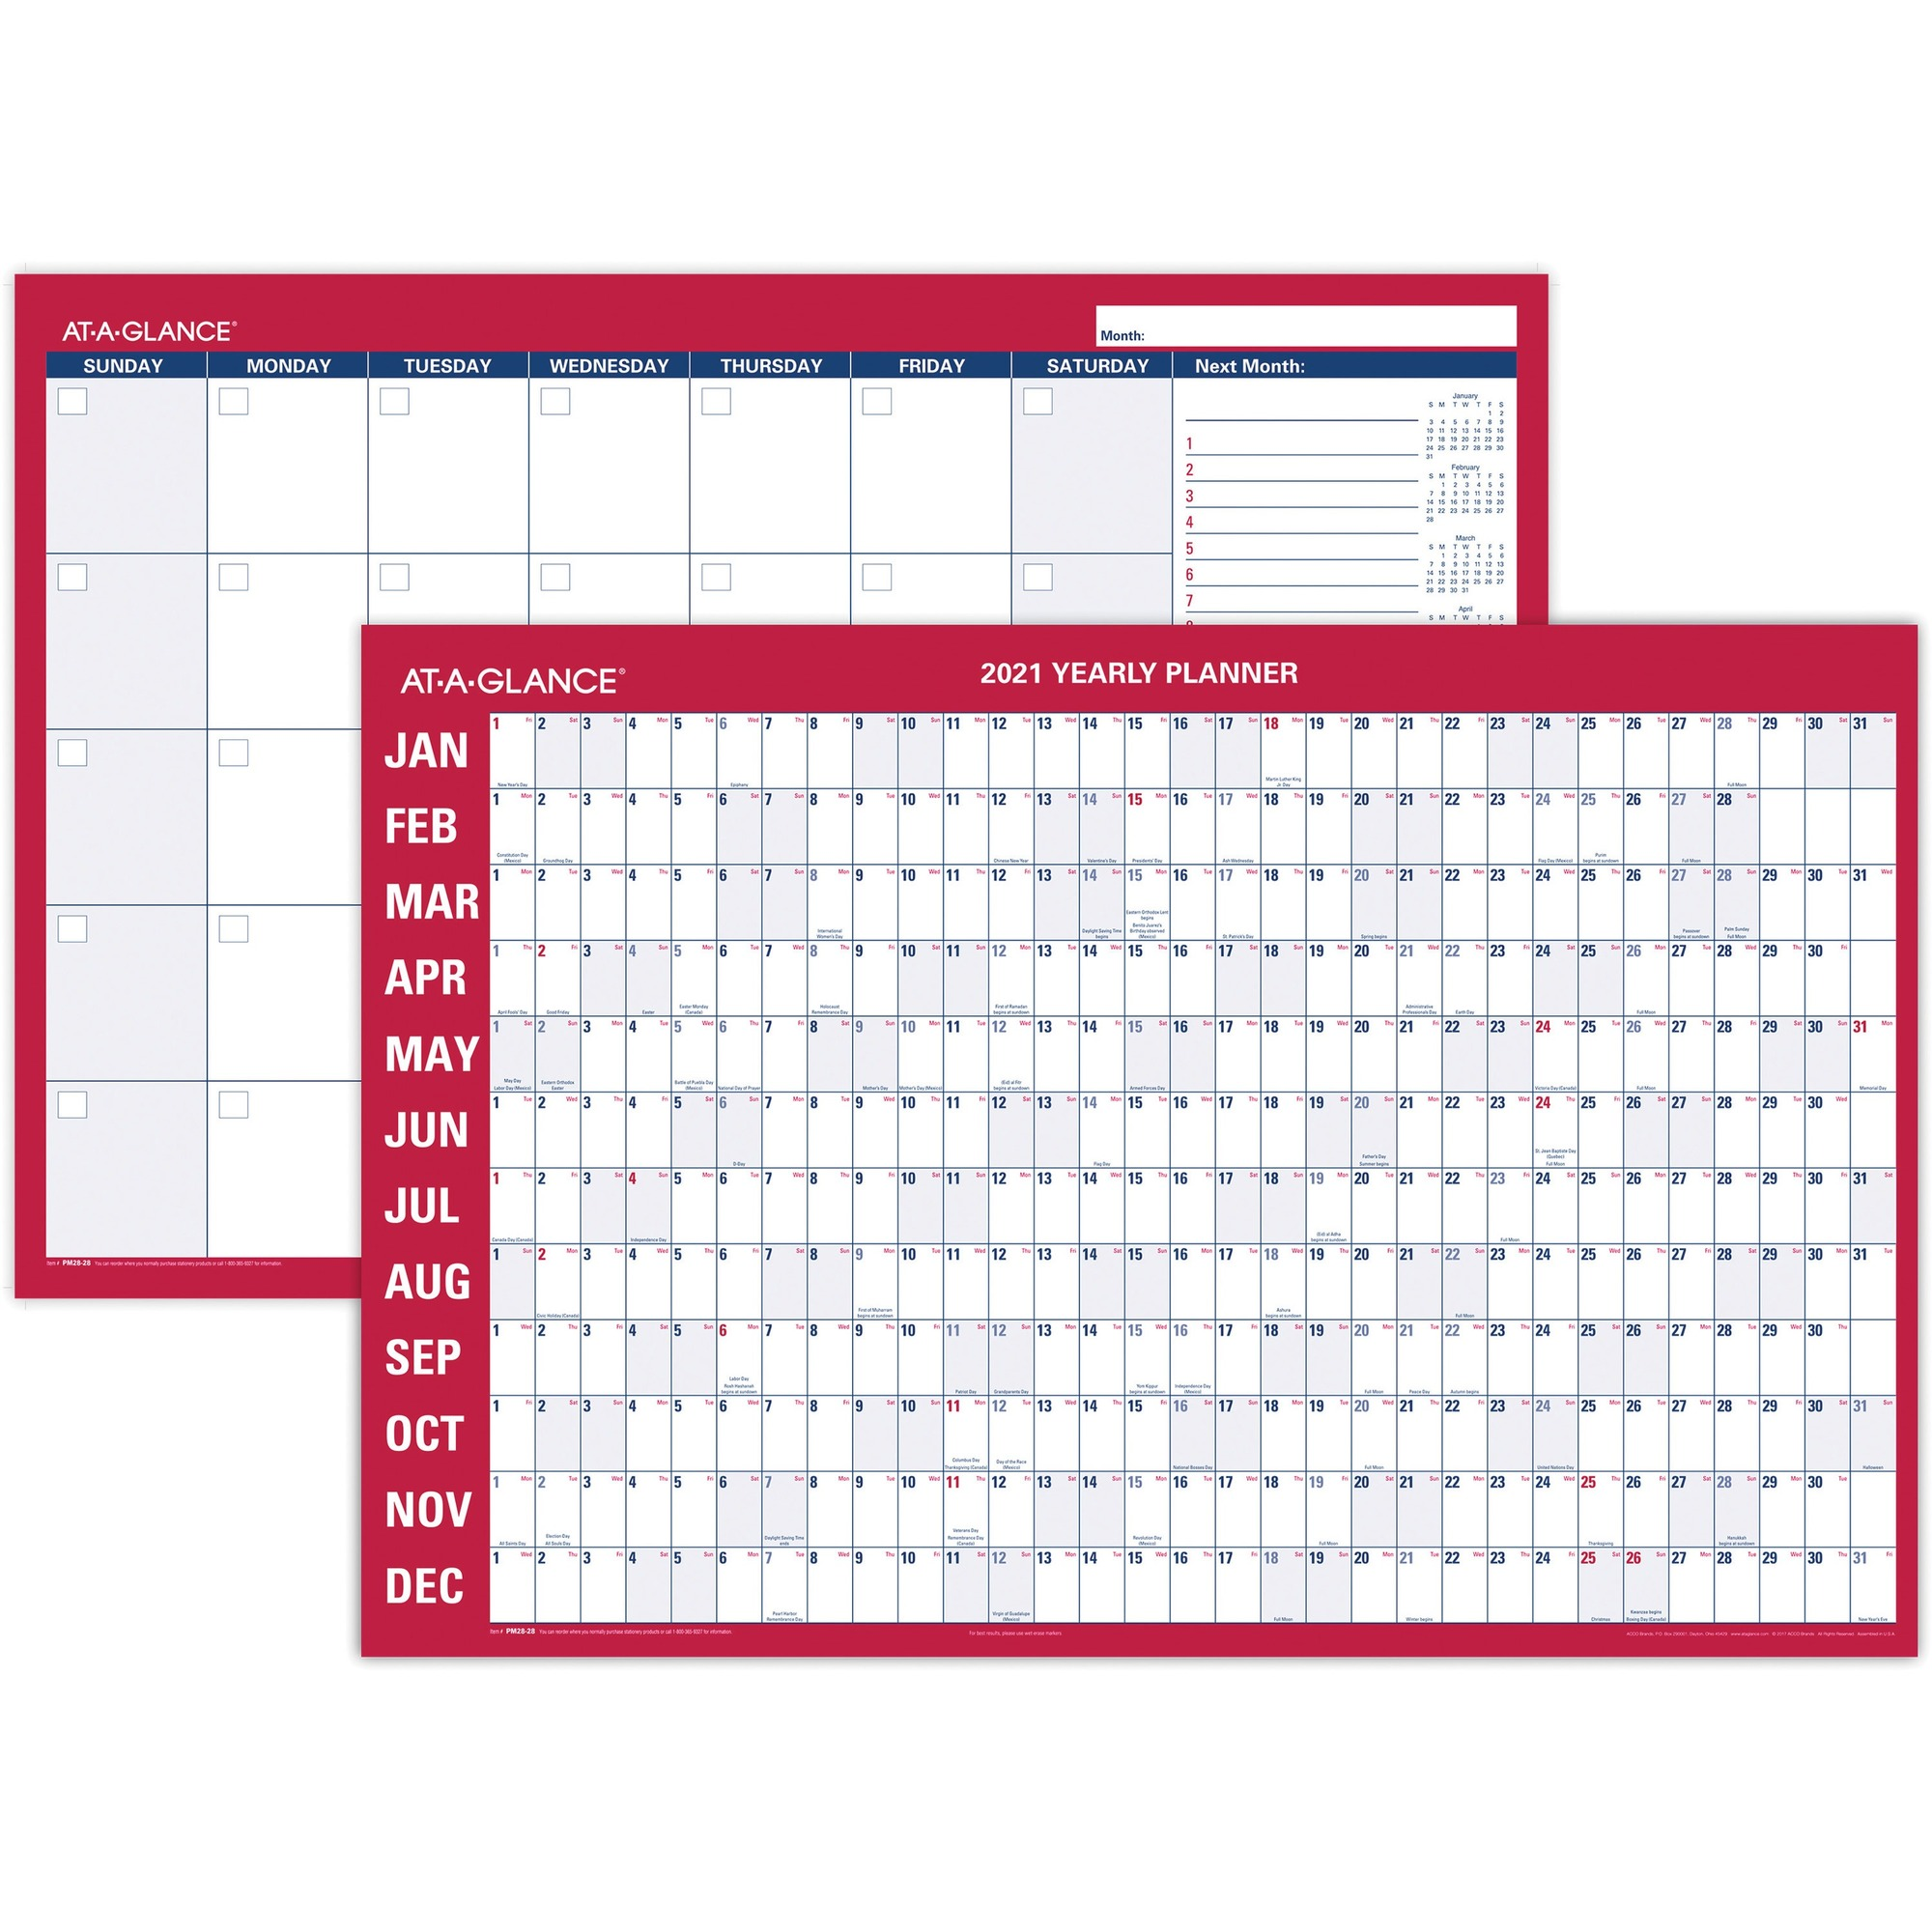 At-A-Glance Erasable/Reversible Yearly Wall Planner - Yearly - 1 Year - January 2020 till December 2020 - 36